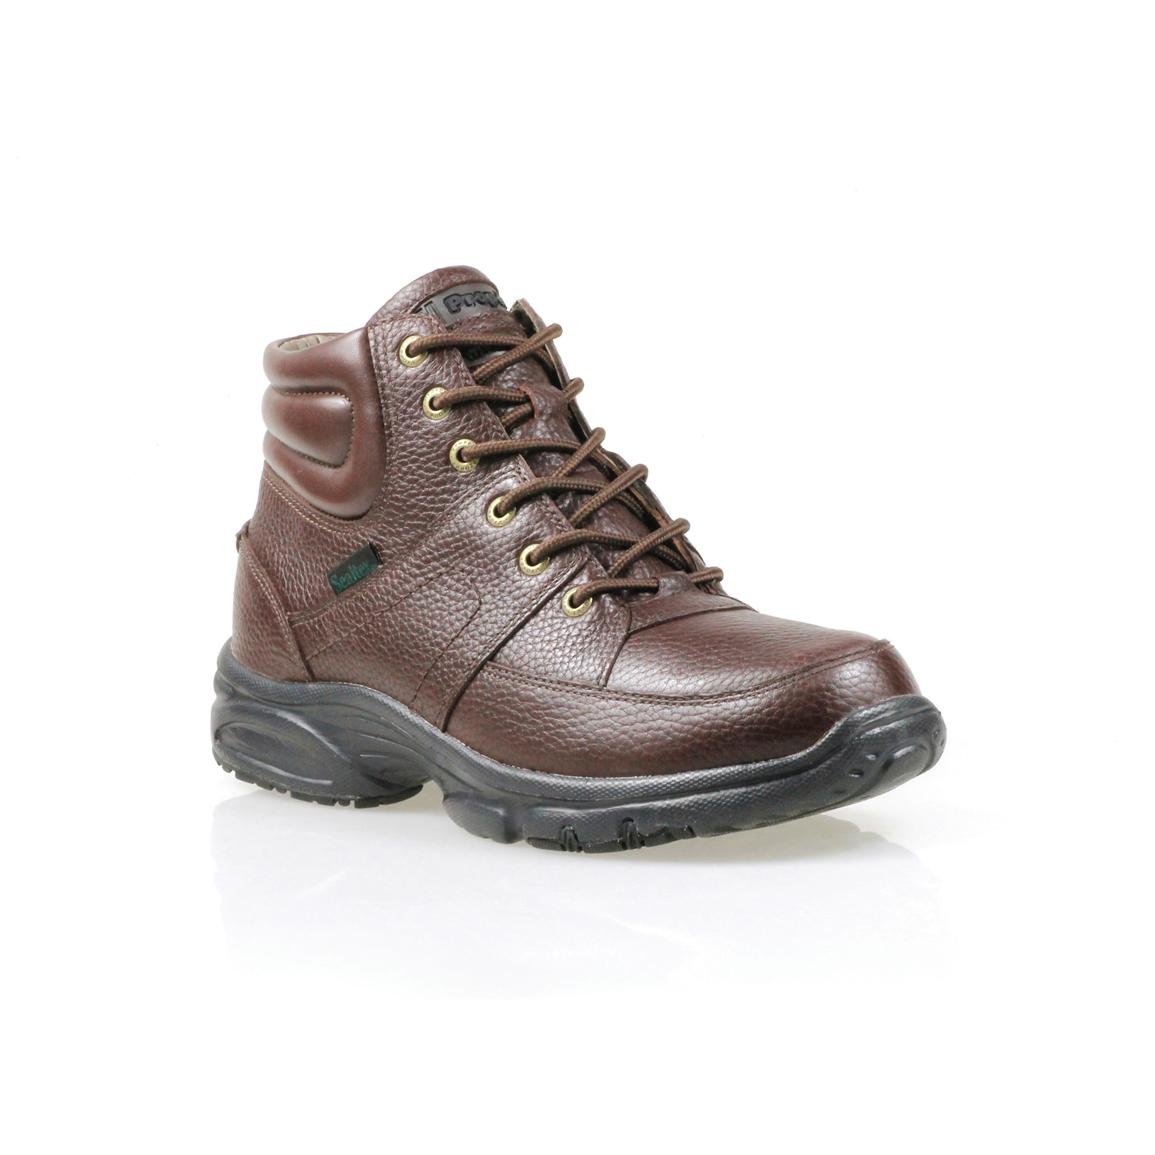 Men's Propet® Four Points Waterproof Mid Boots, Brown